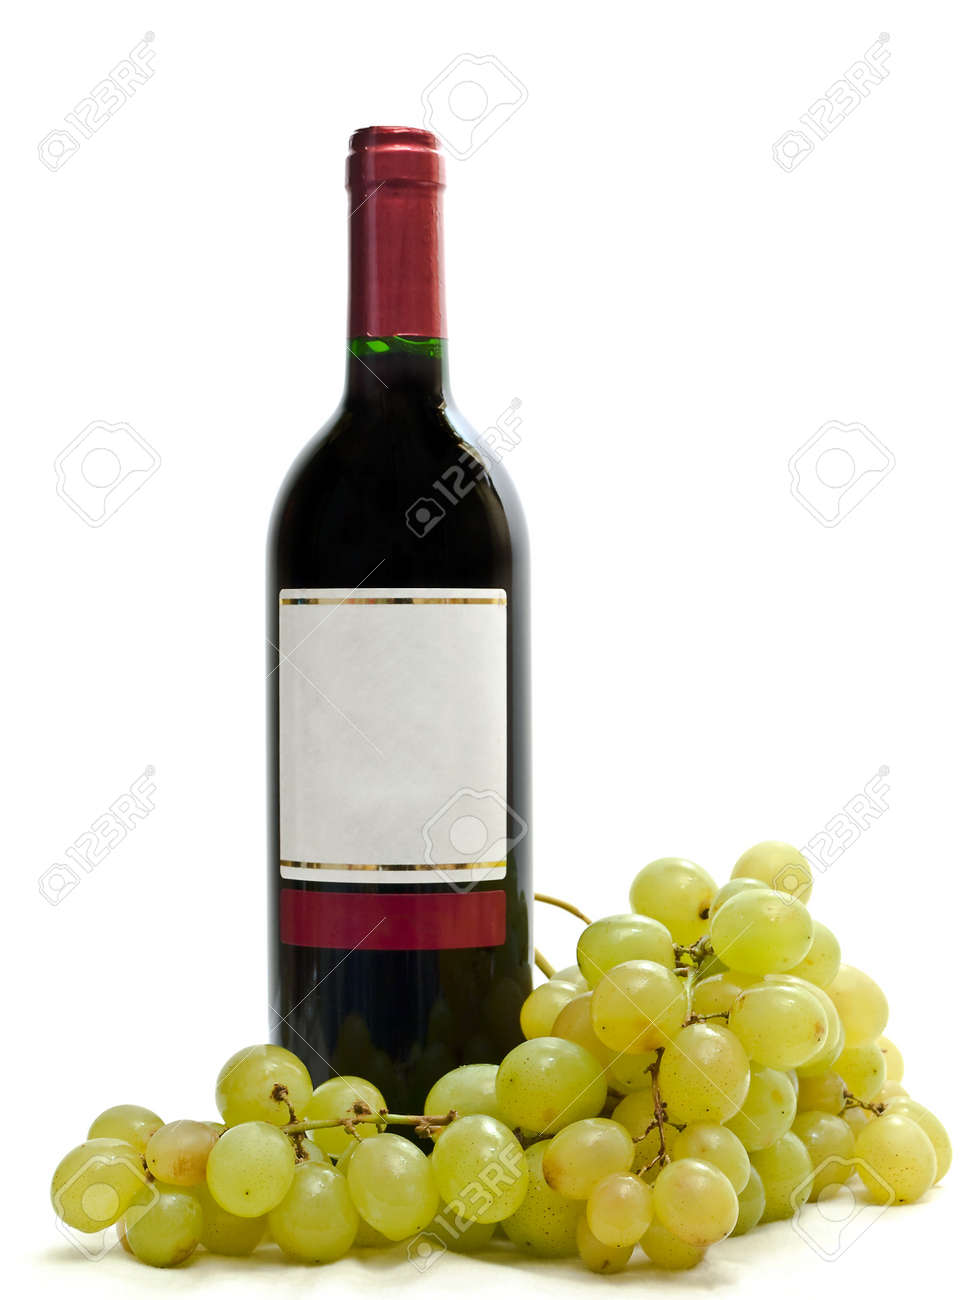 bottle of red wine with vine against the white background Stock Photo - 4274696